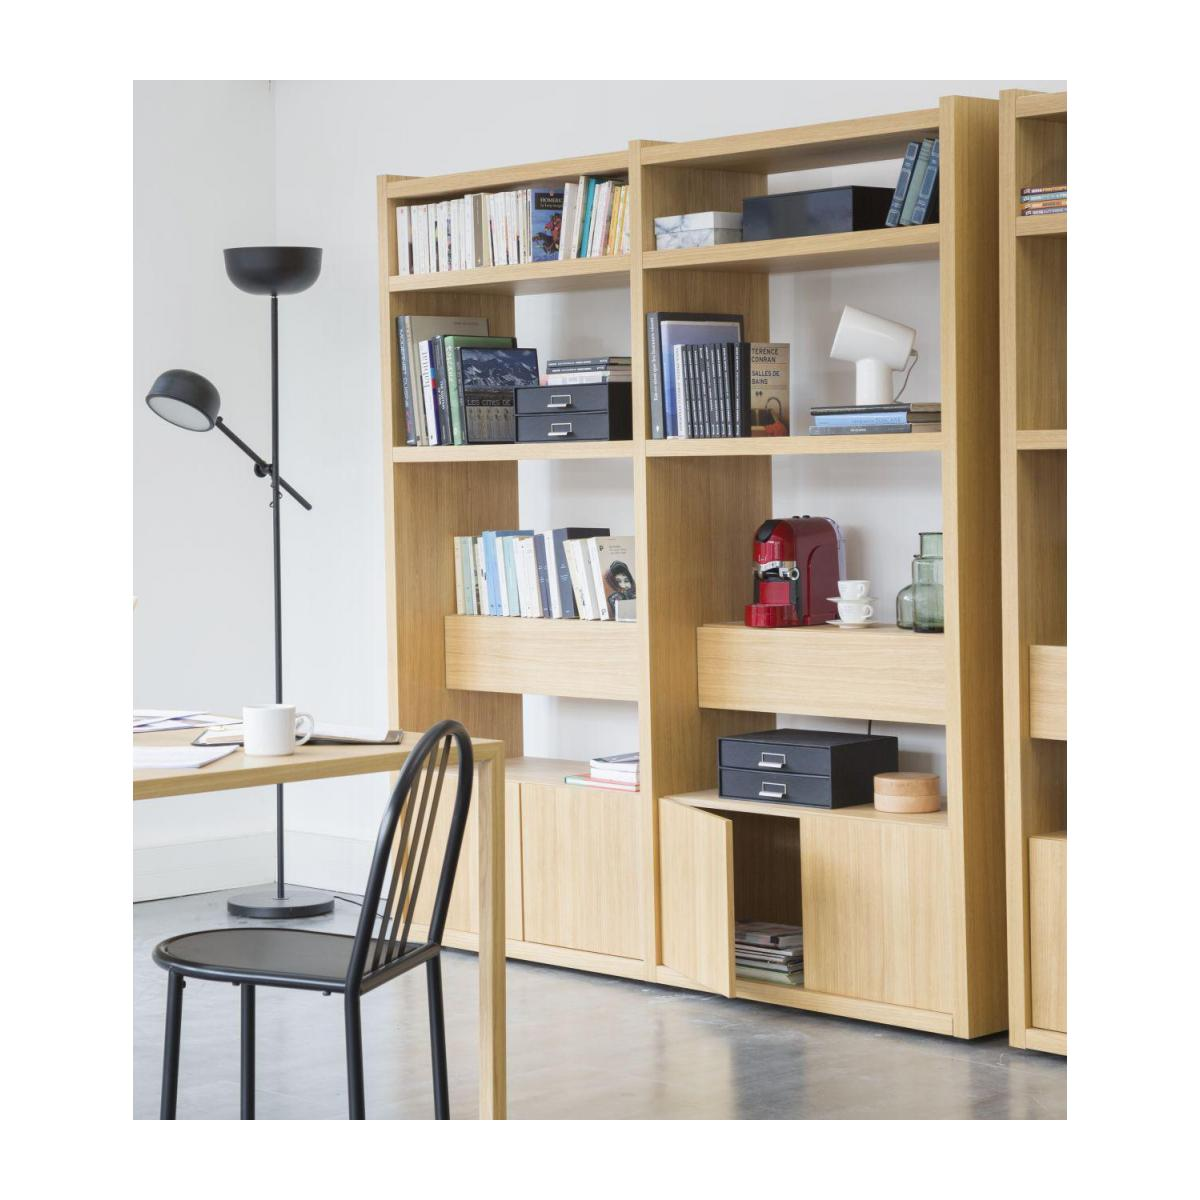 Extension for small oak shelving unit n°2